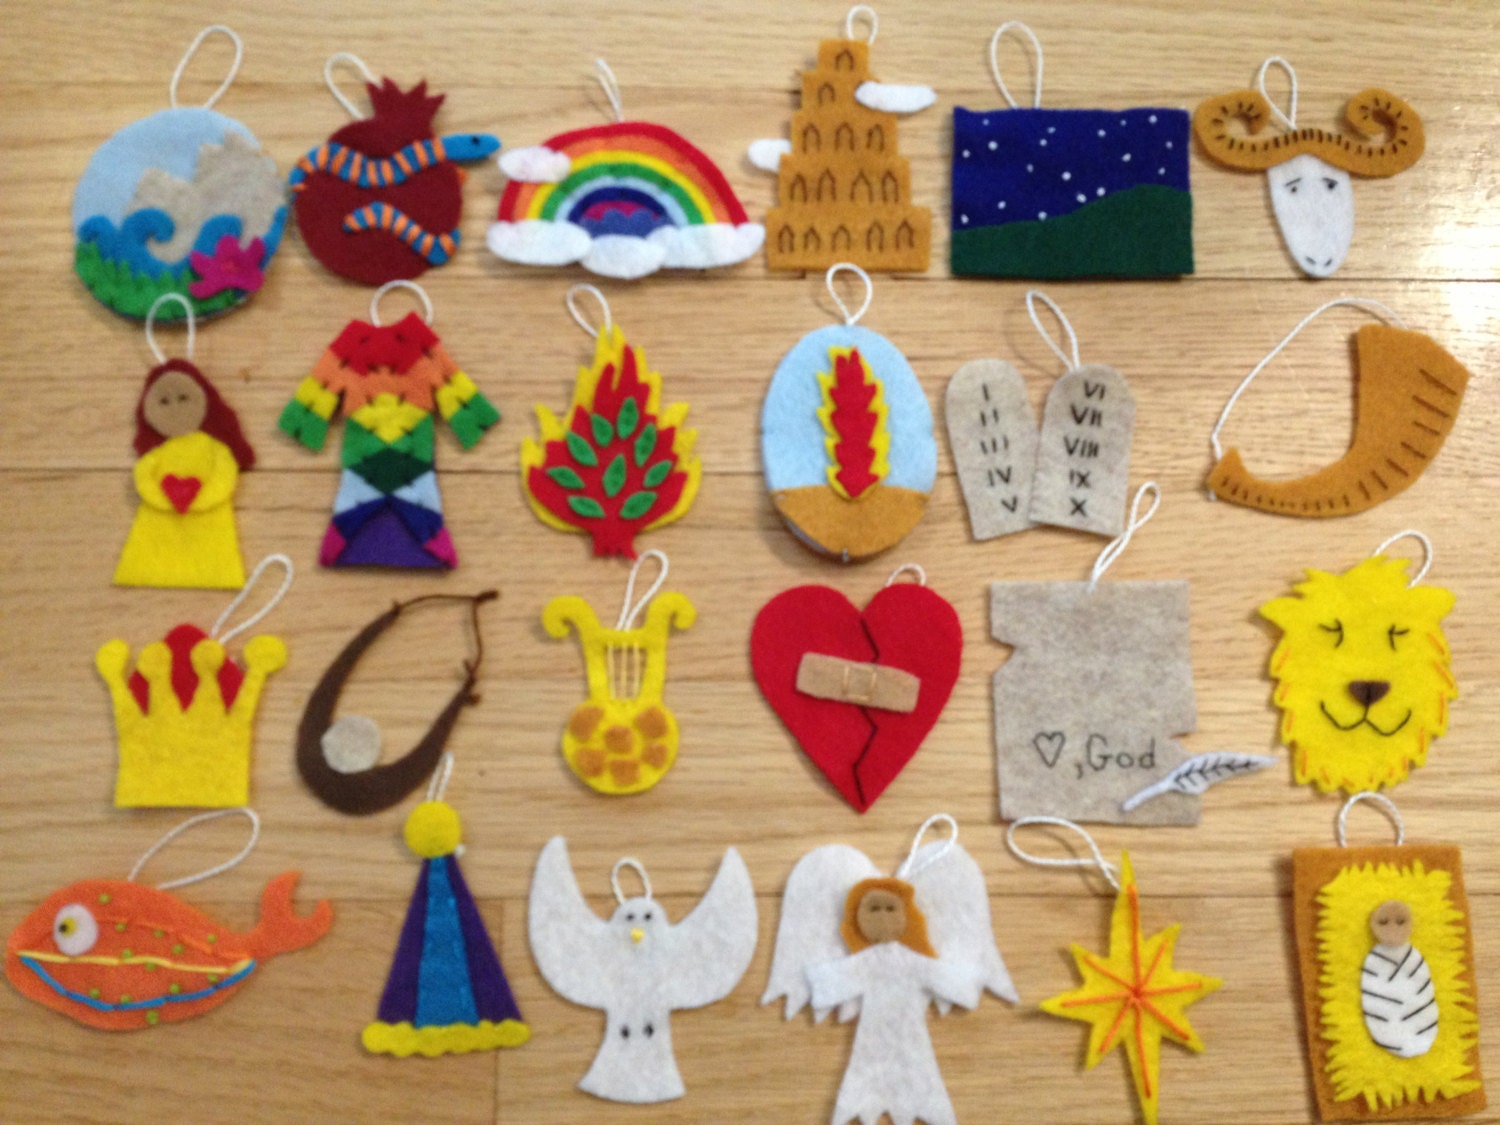 Tutorial For 24 Jesse Tree Ornaments Insipred By The Jesus